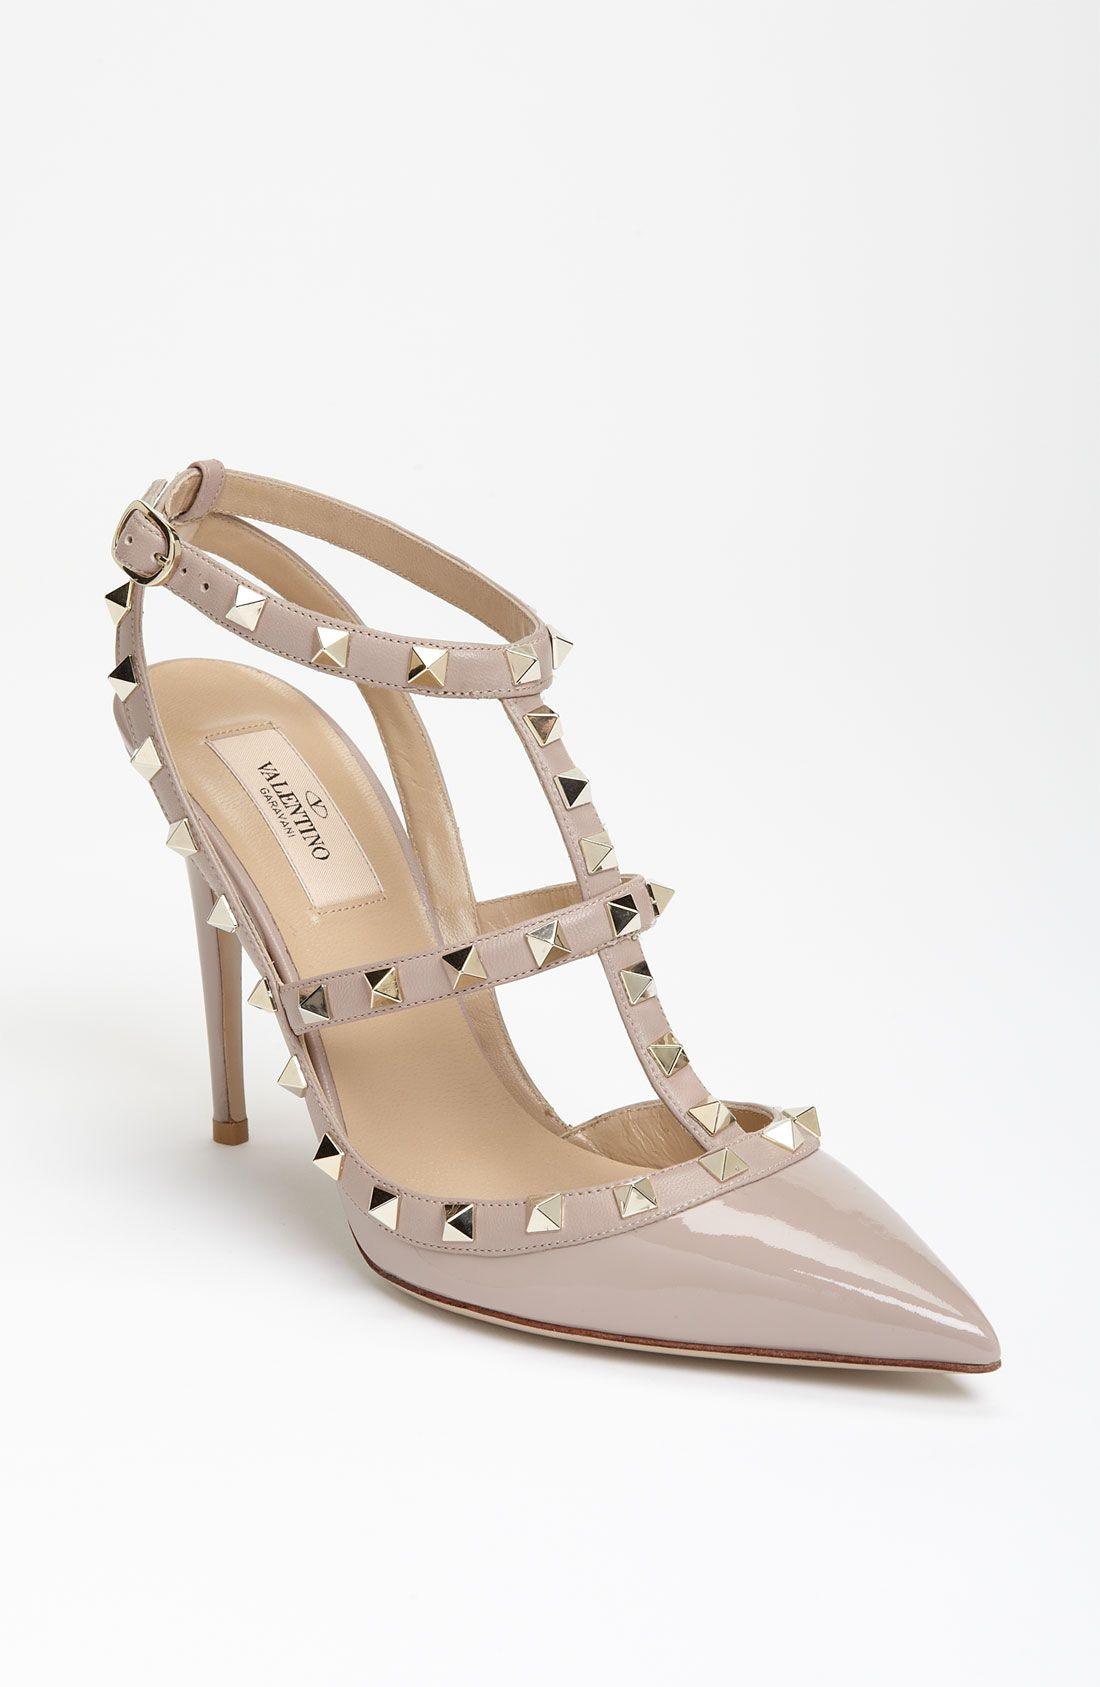 Valentino sandals shoes price - Free Shipping And Returns On Valentino Rockstud T Strap Pump Women